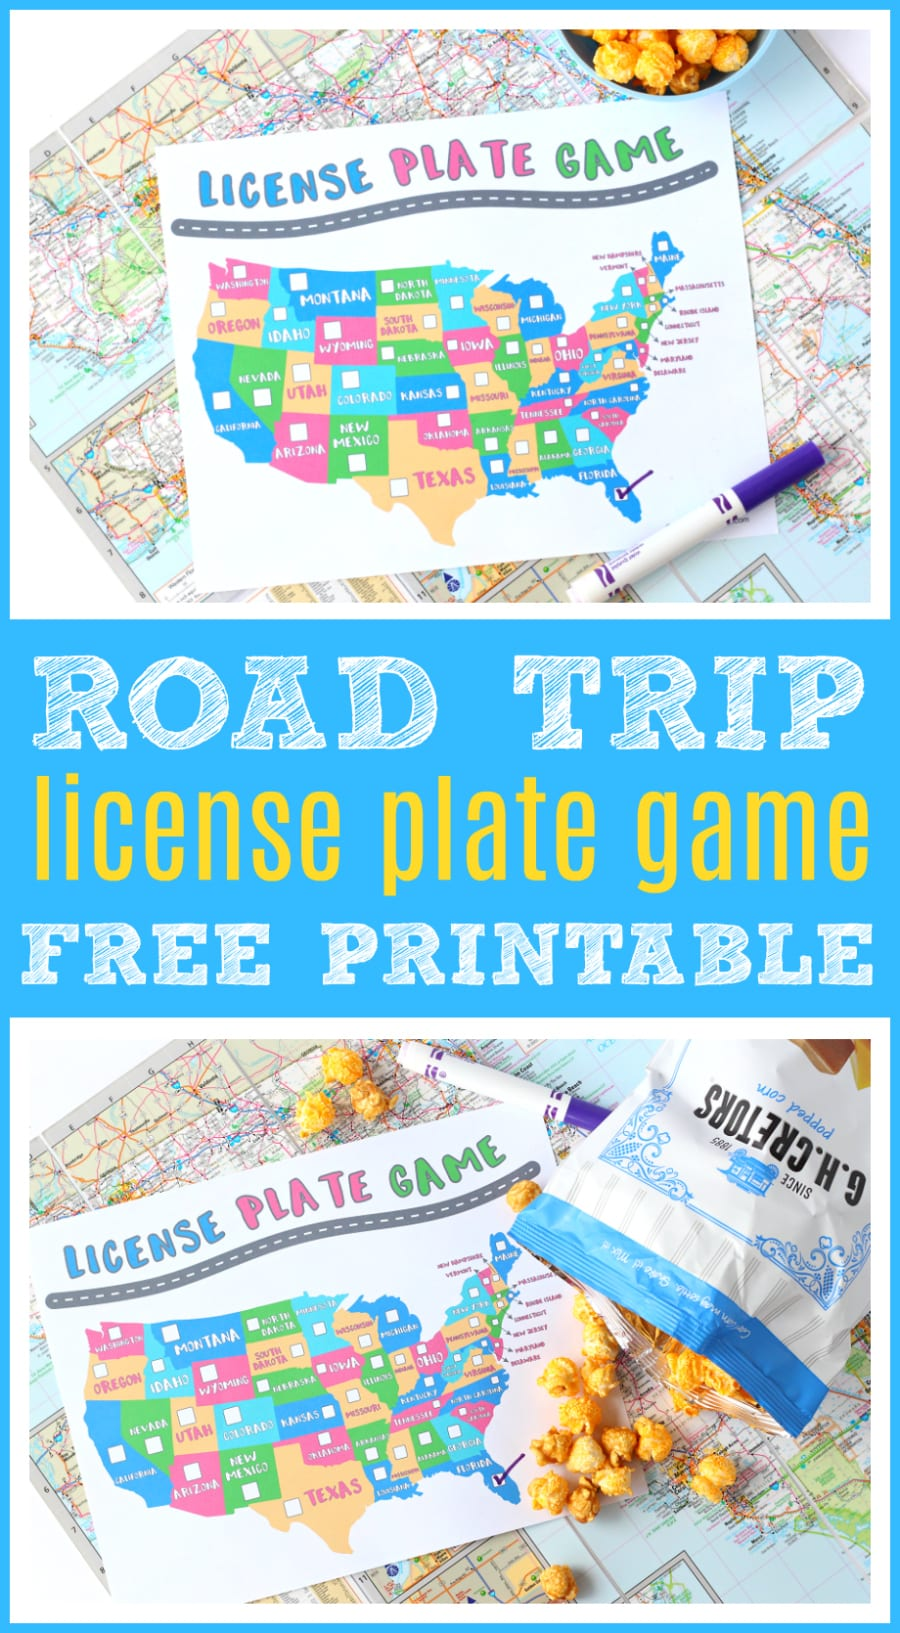 Taking the kids on a road trip? Don't forget to print this FREE License Plate Game Printable. Easy way to keep your little ones busy on long car rides, with simple checklist the whole family can get involved in + easy road trip snack ideas! #RoadTrip #FamilyTravel #FreePrintable